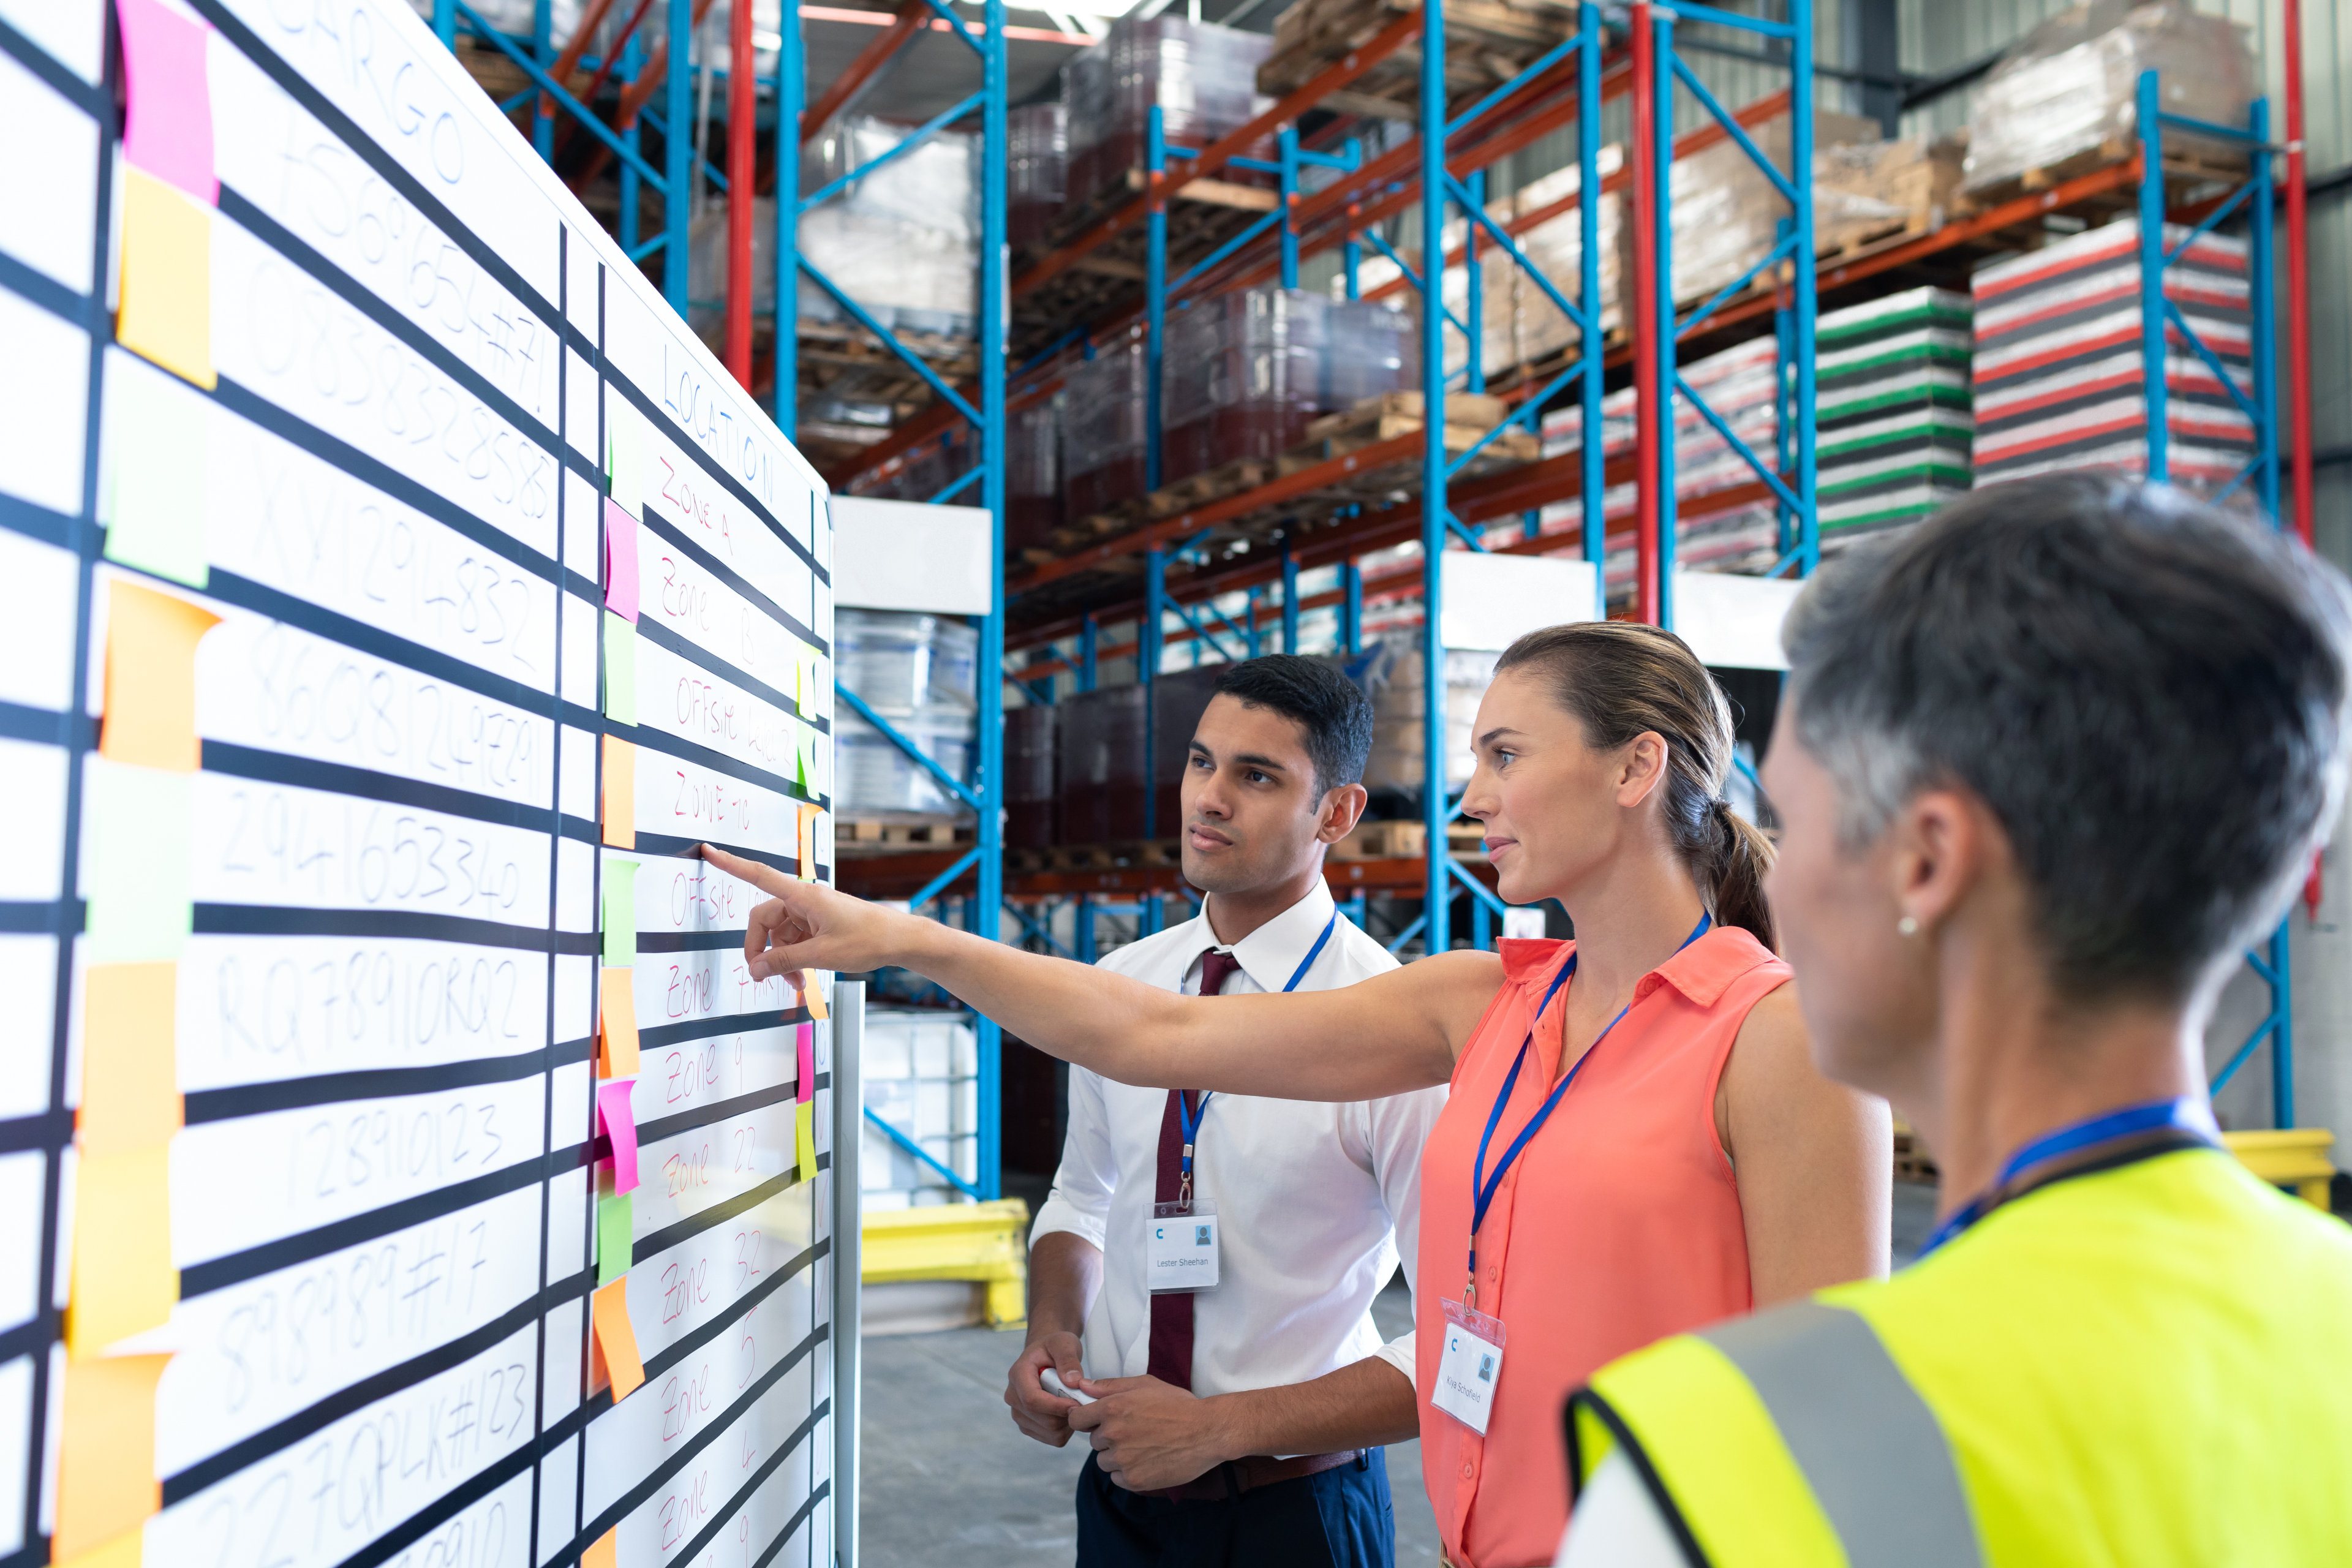 Staff people discussing over whiteboard in warehouse